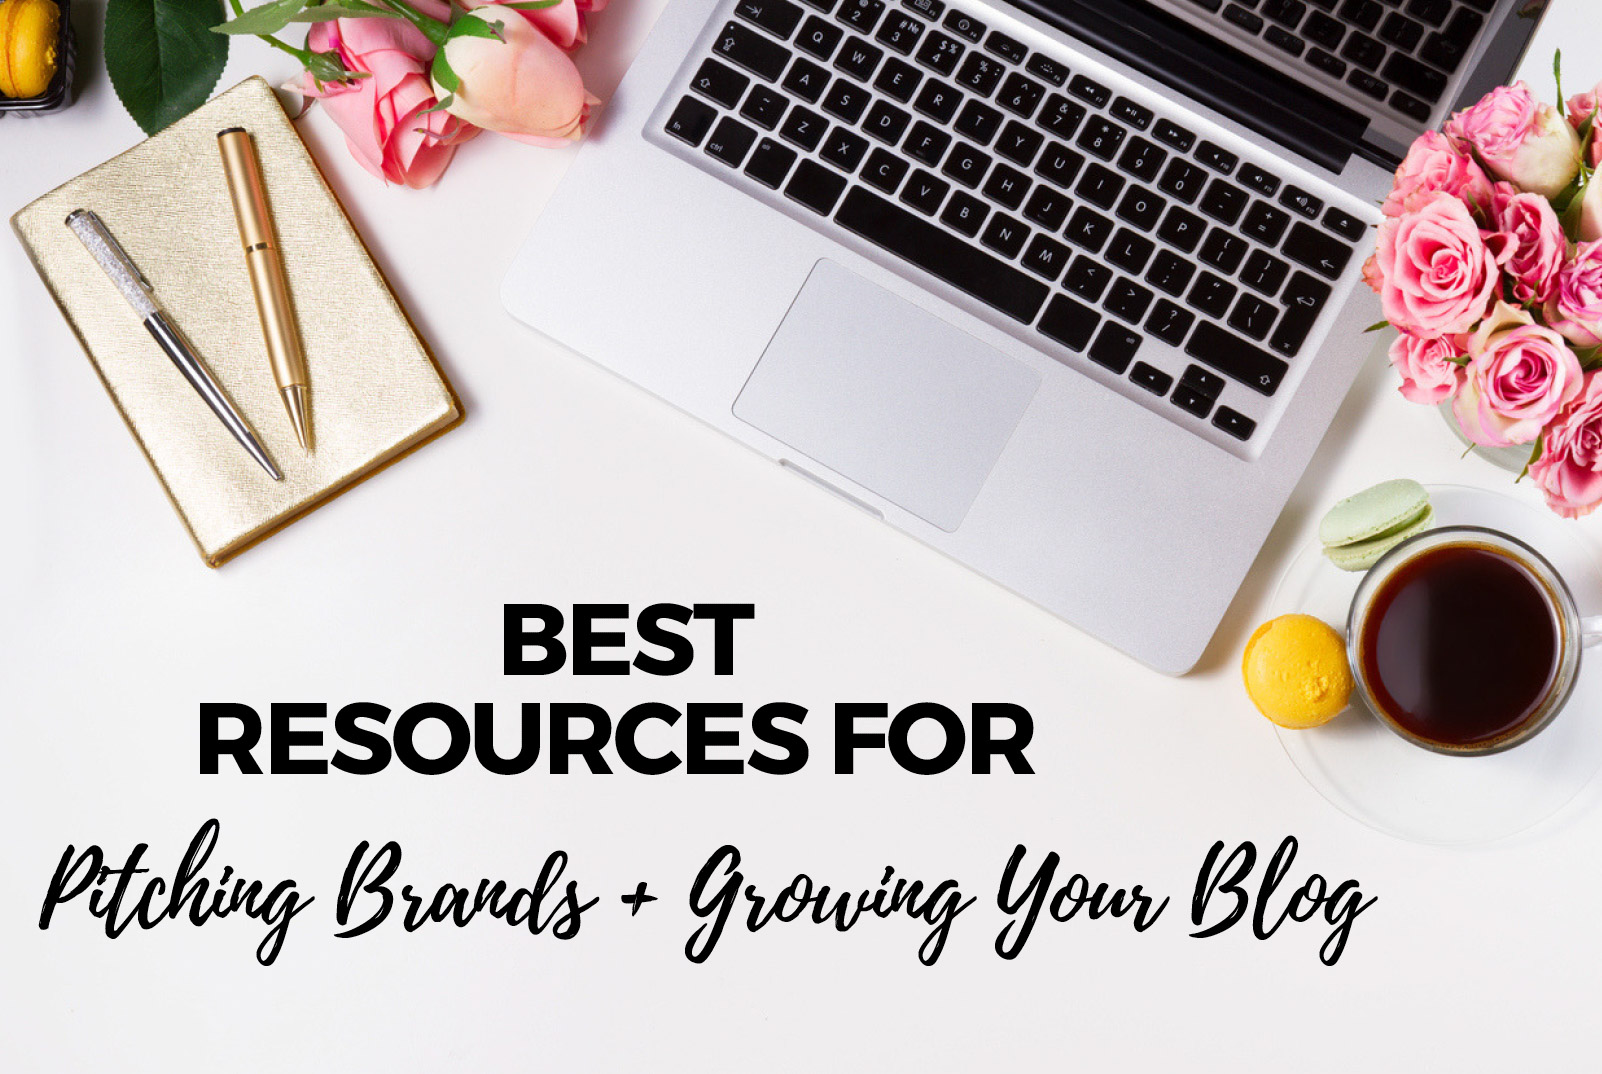 Best-Resources-for-Pitching-Brands-Growing-Your-Blog